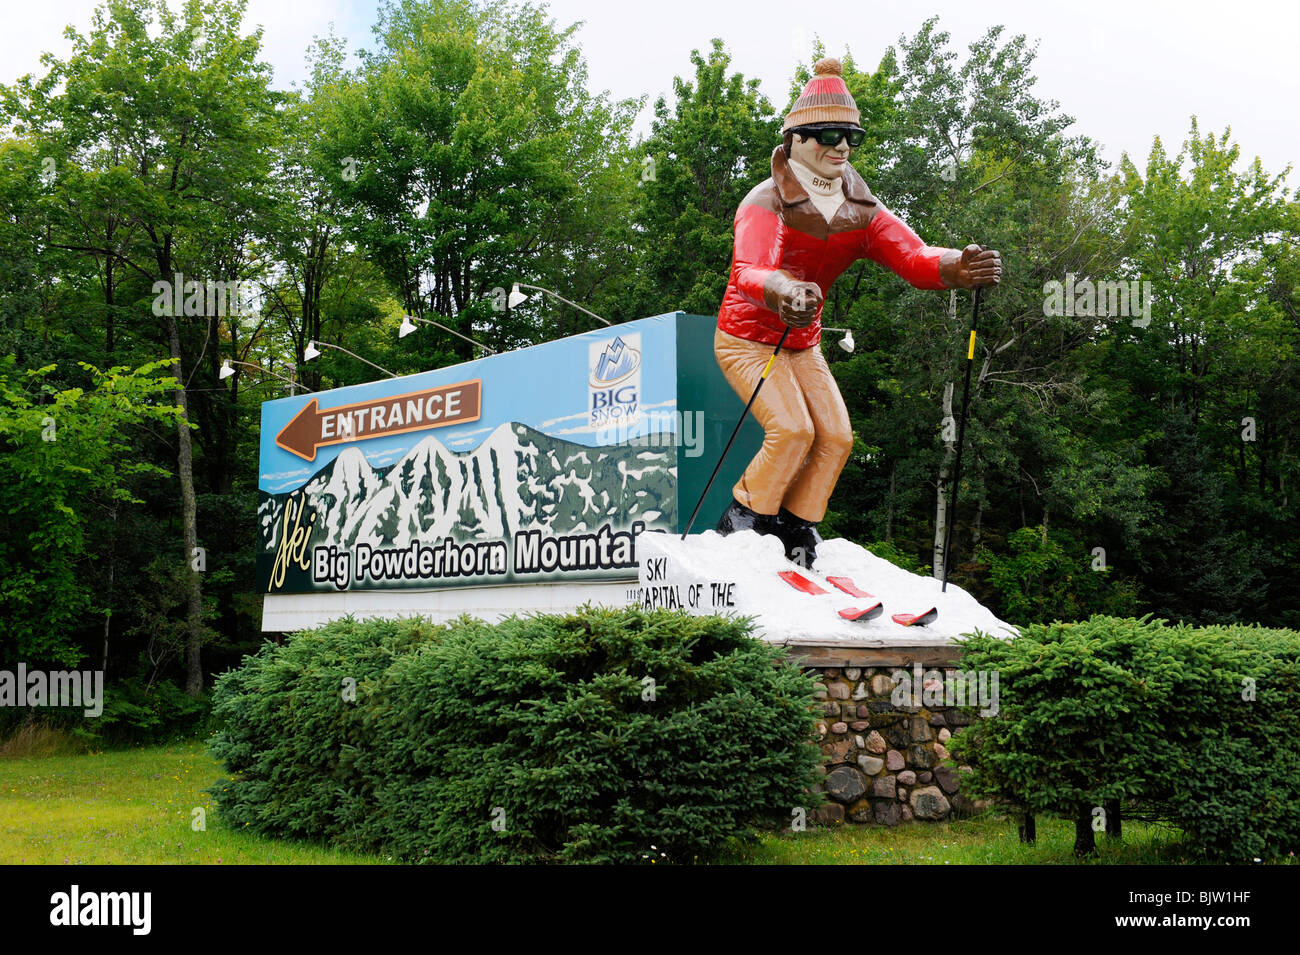 big powderhorn mountain ski resort area upper peninsula michigan